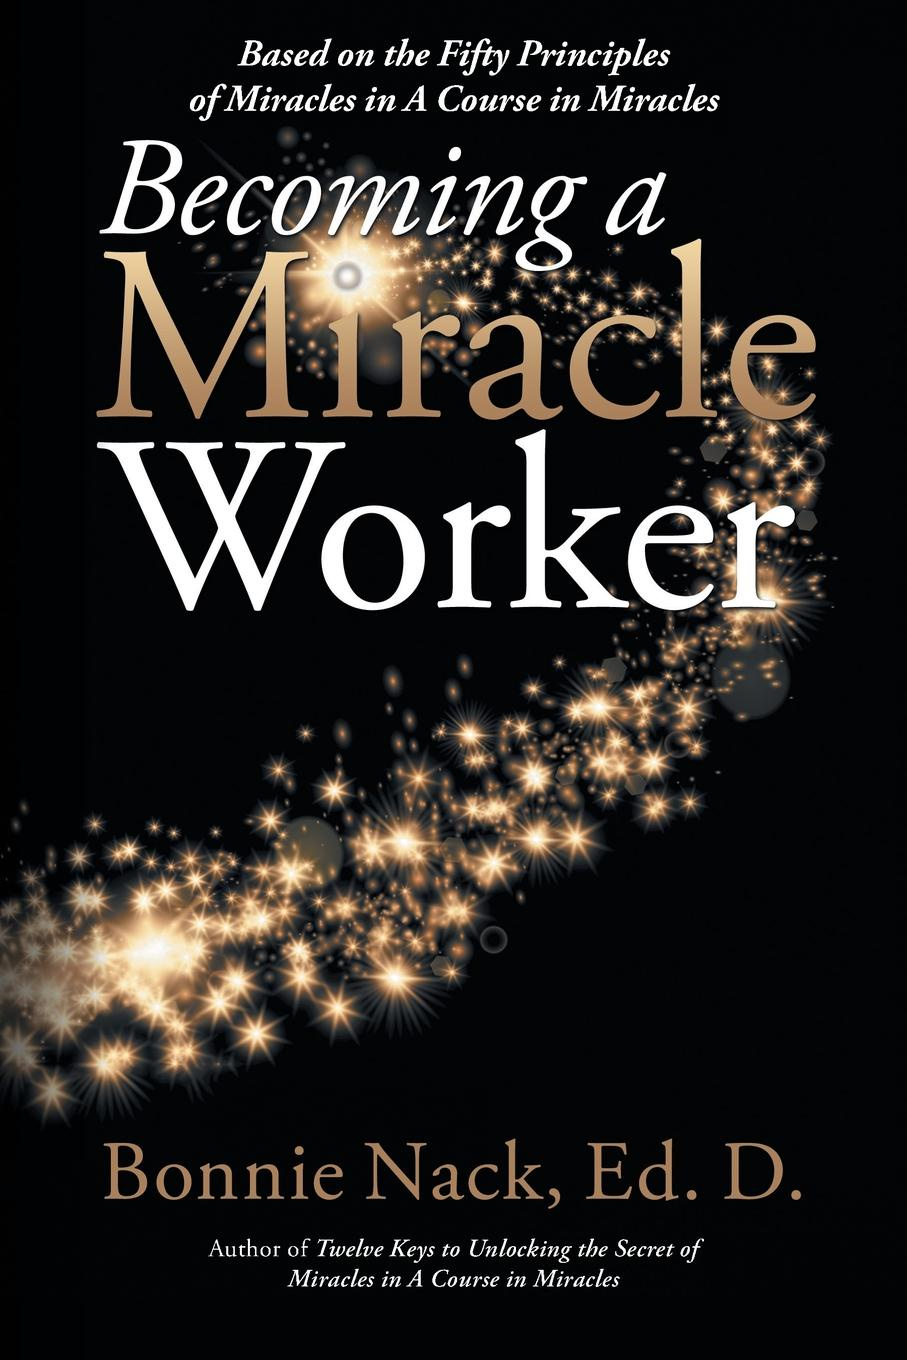 Bonnie Nack EdD Becoming a Miracle Worker. Based on the Fifty Principles of Miracles in a Course in Miracles masters of meditation and miracles